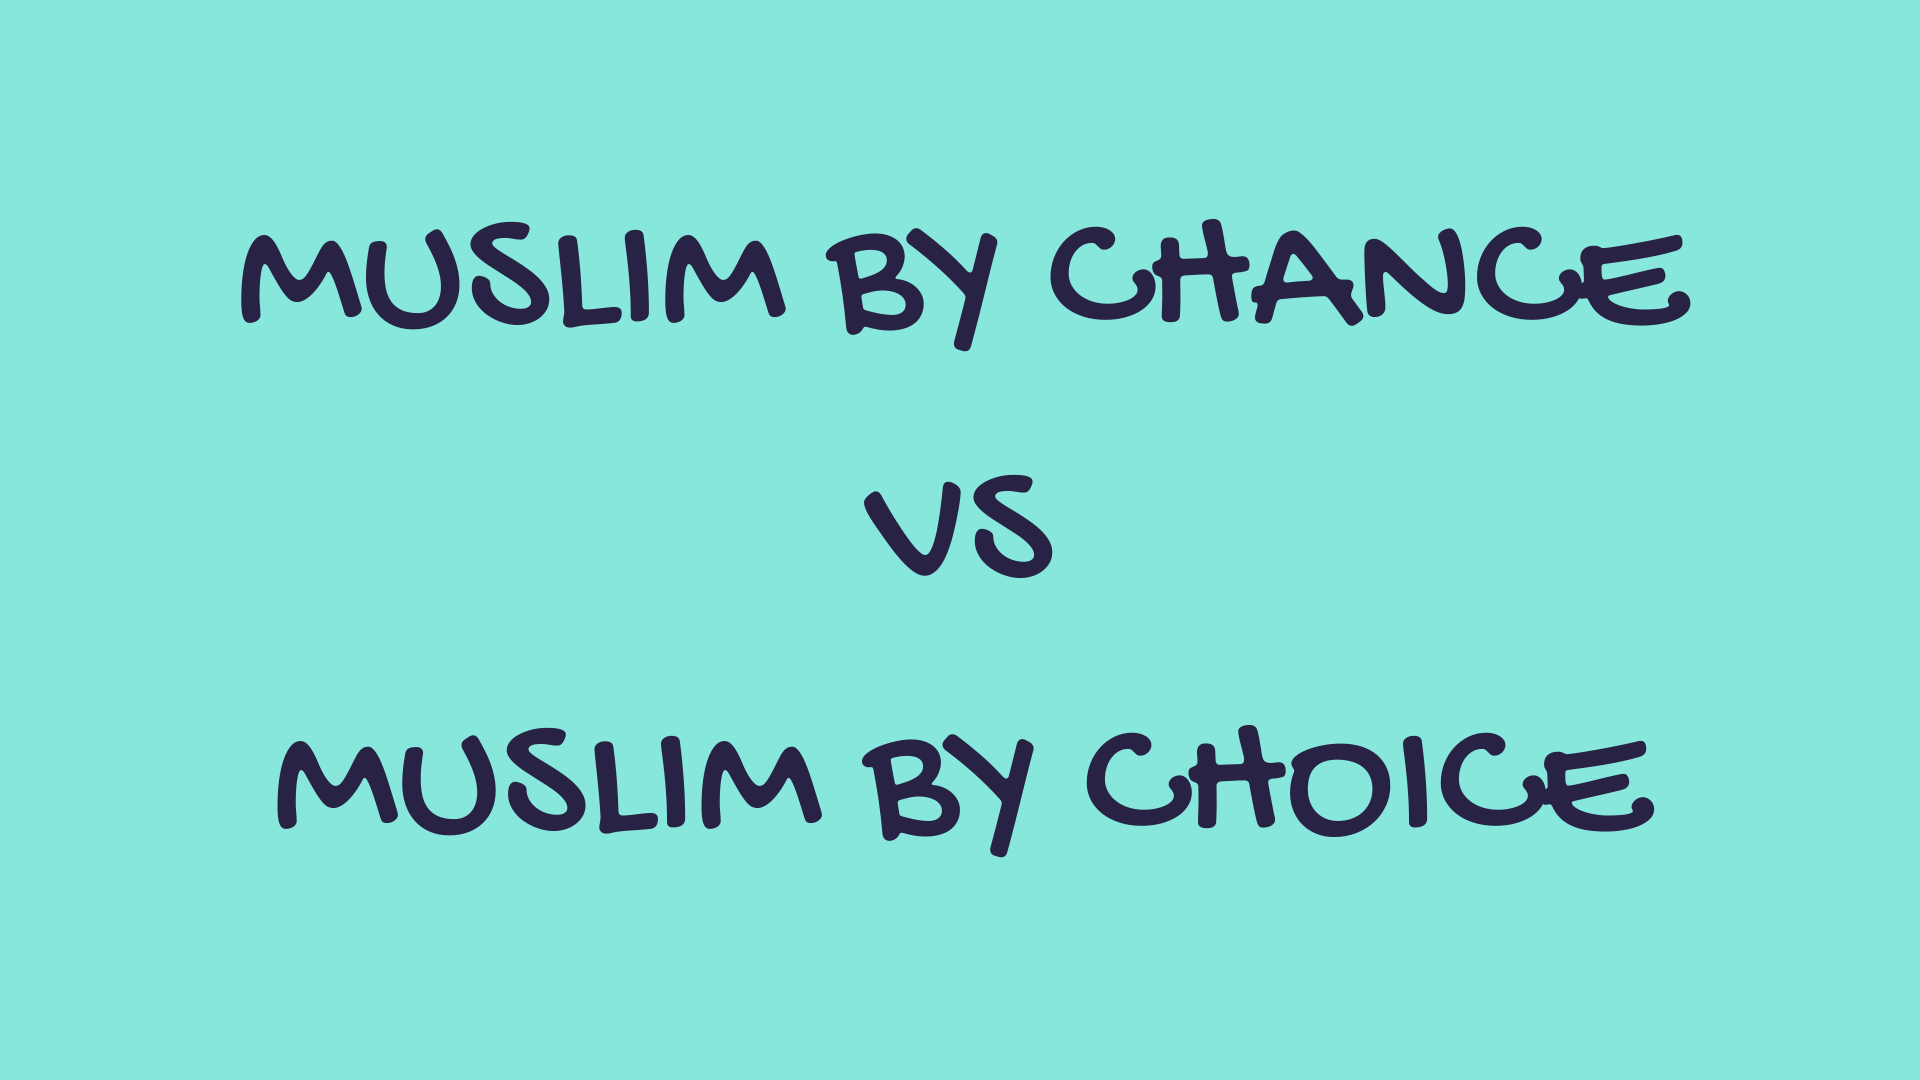 Muslim by Chance or by Choice?